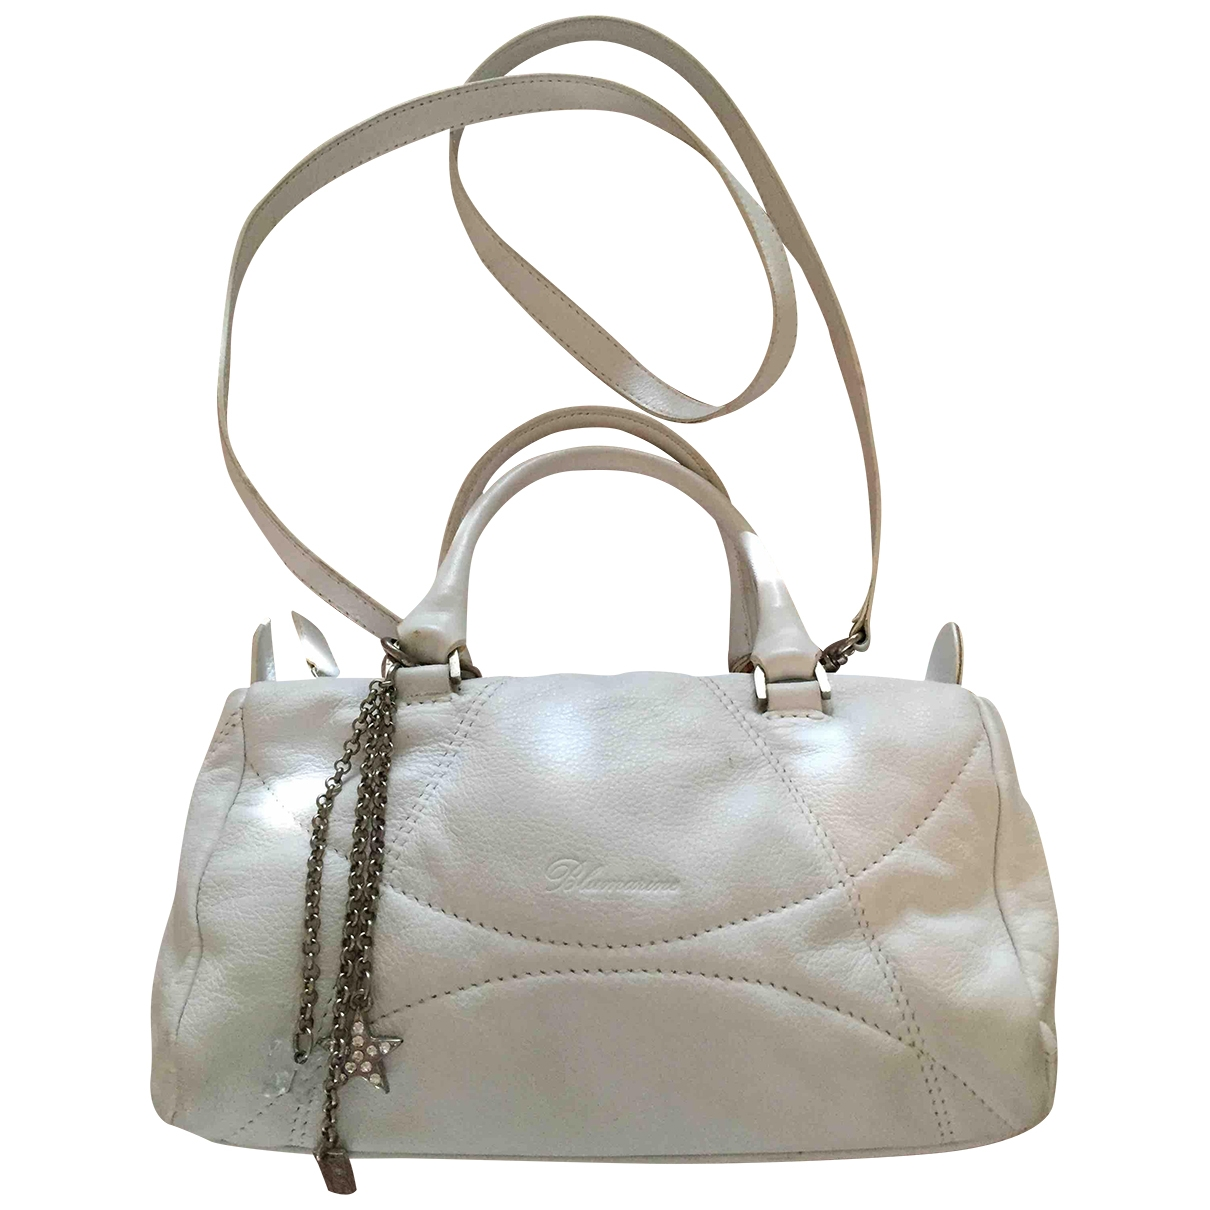 Blumarine \N White Leather handbag for Women \N